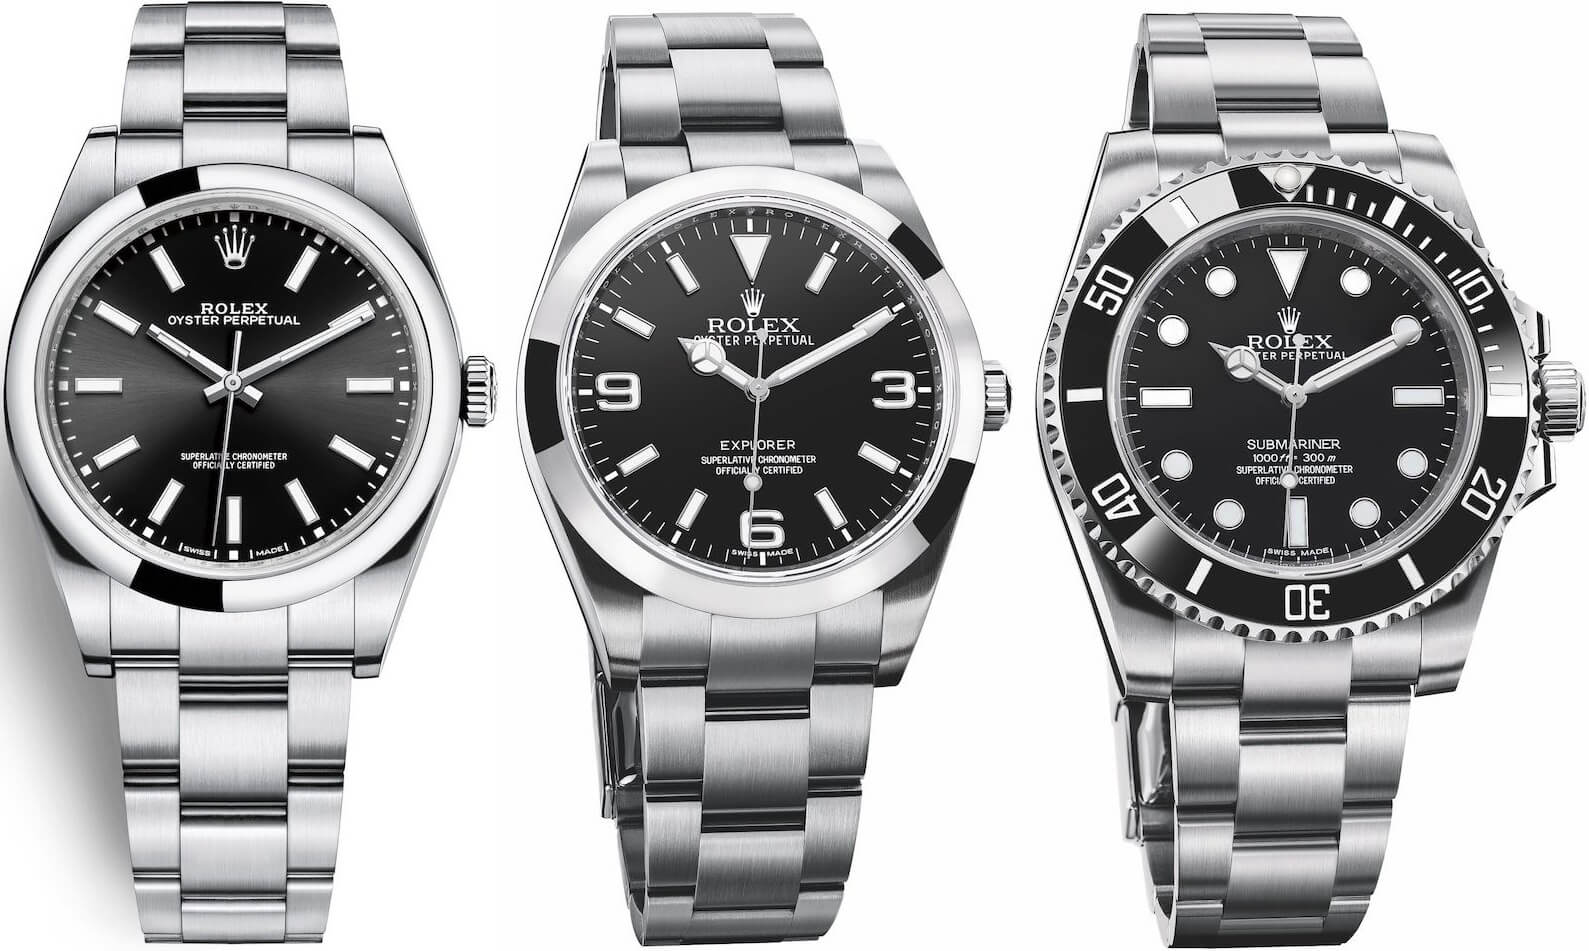 replica Rolex Explorer VS Submariner VS Oyster Perpetual 39